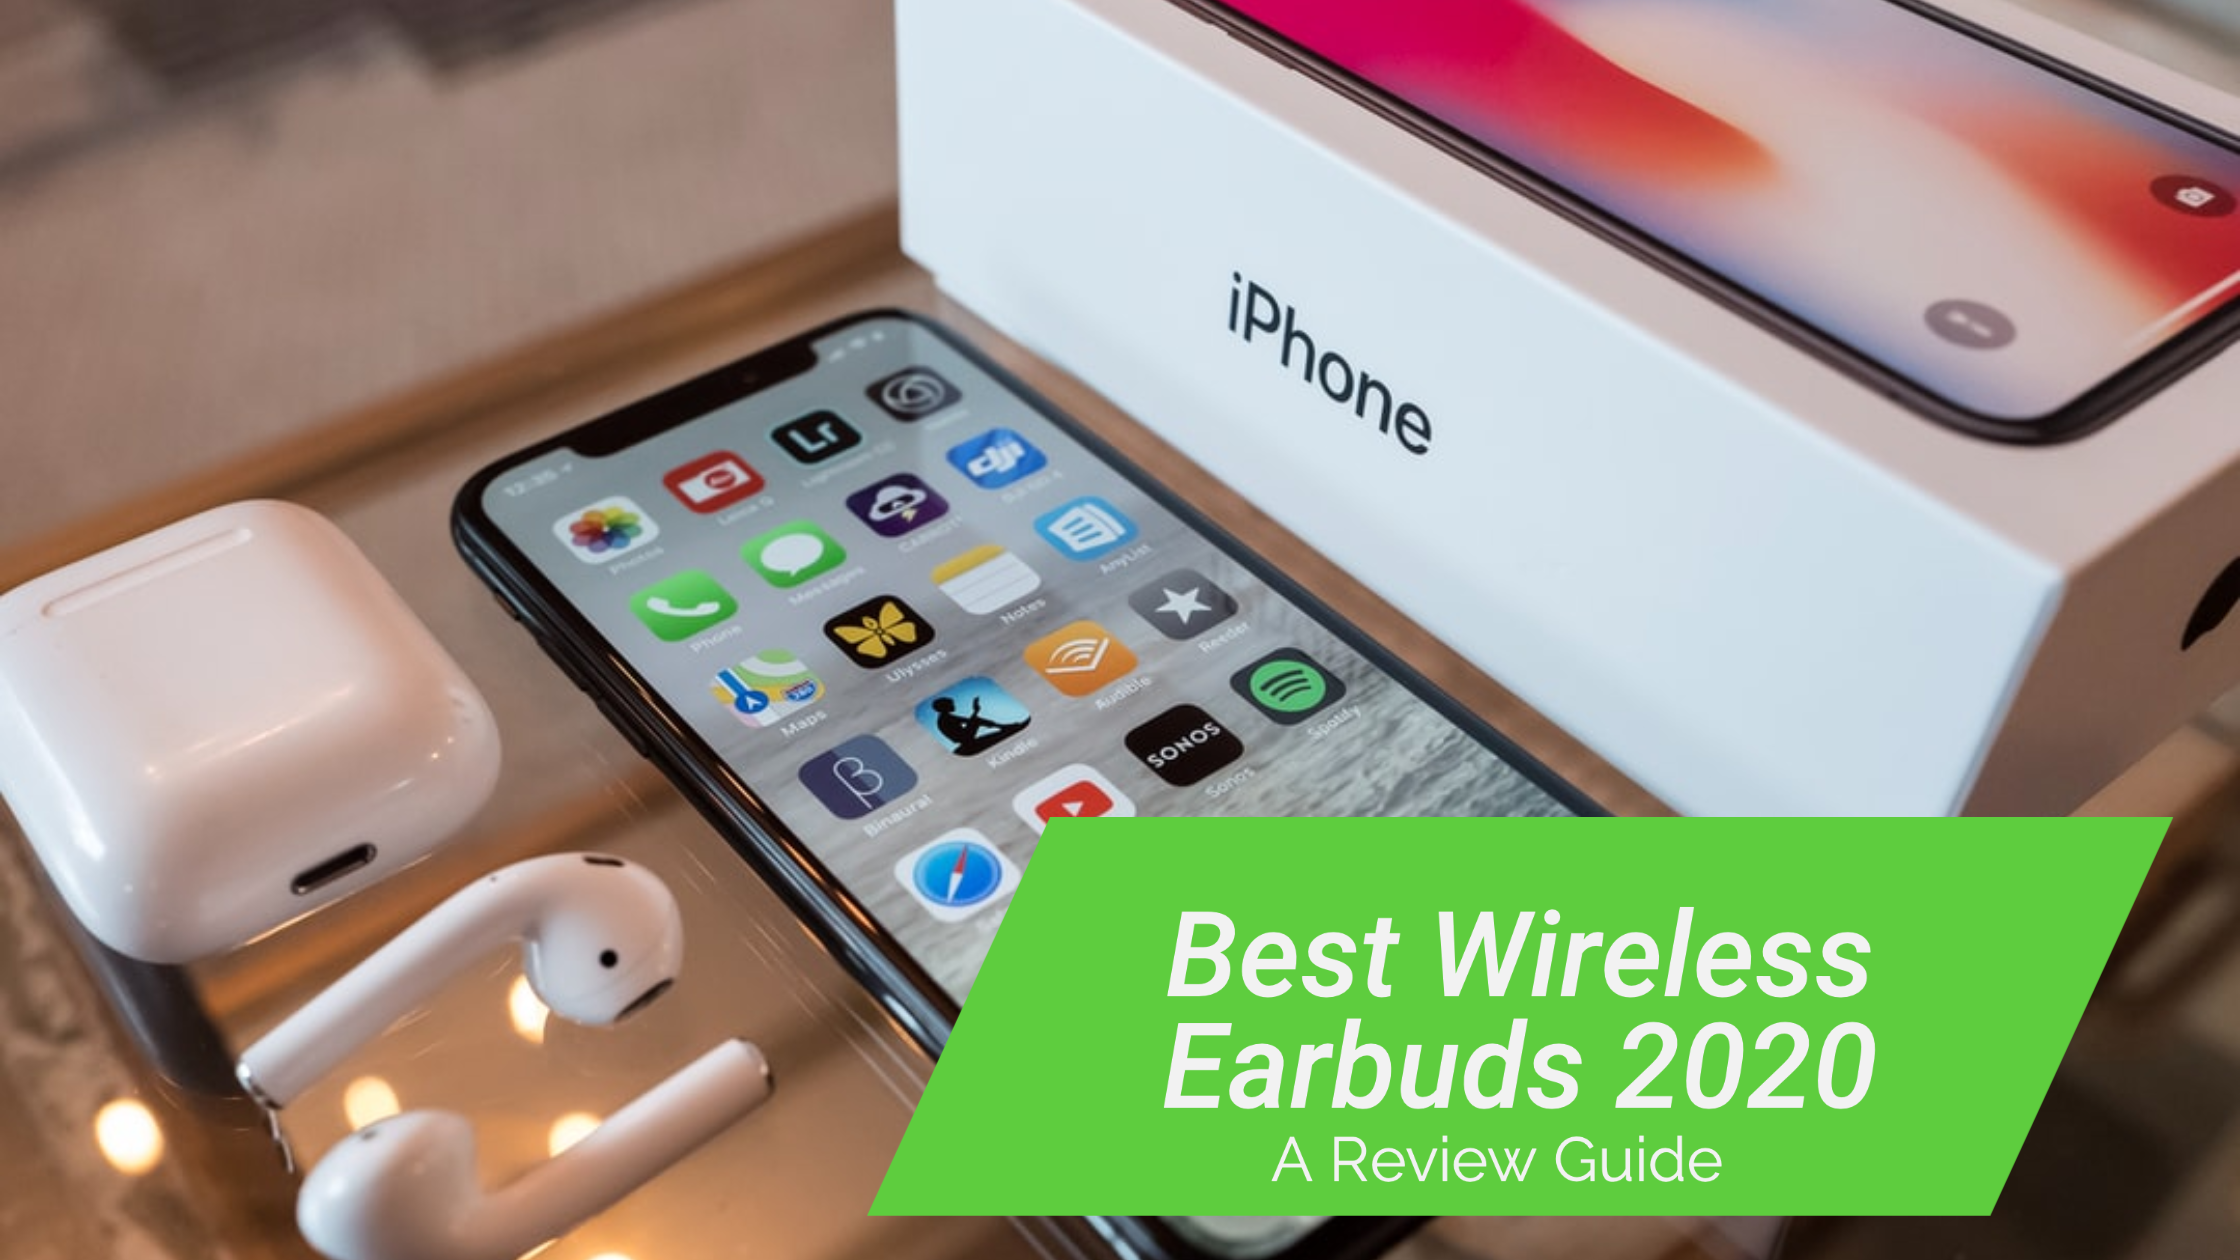 Best Wireless Earbuds 2020